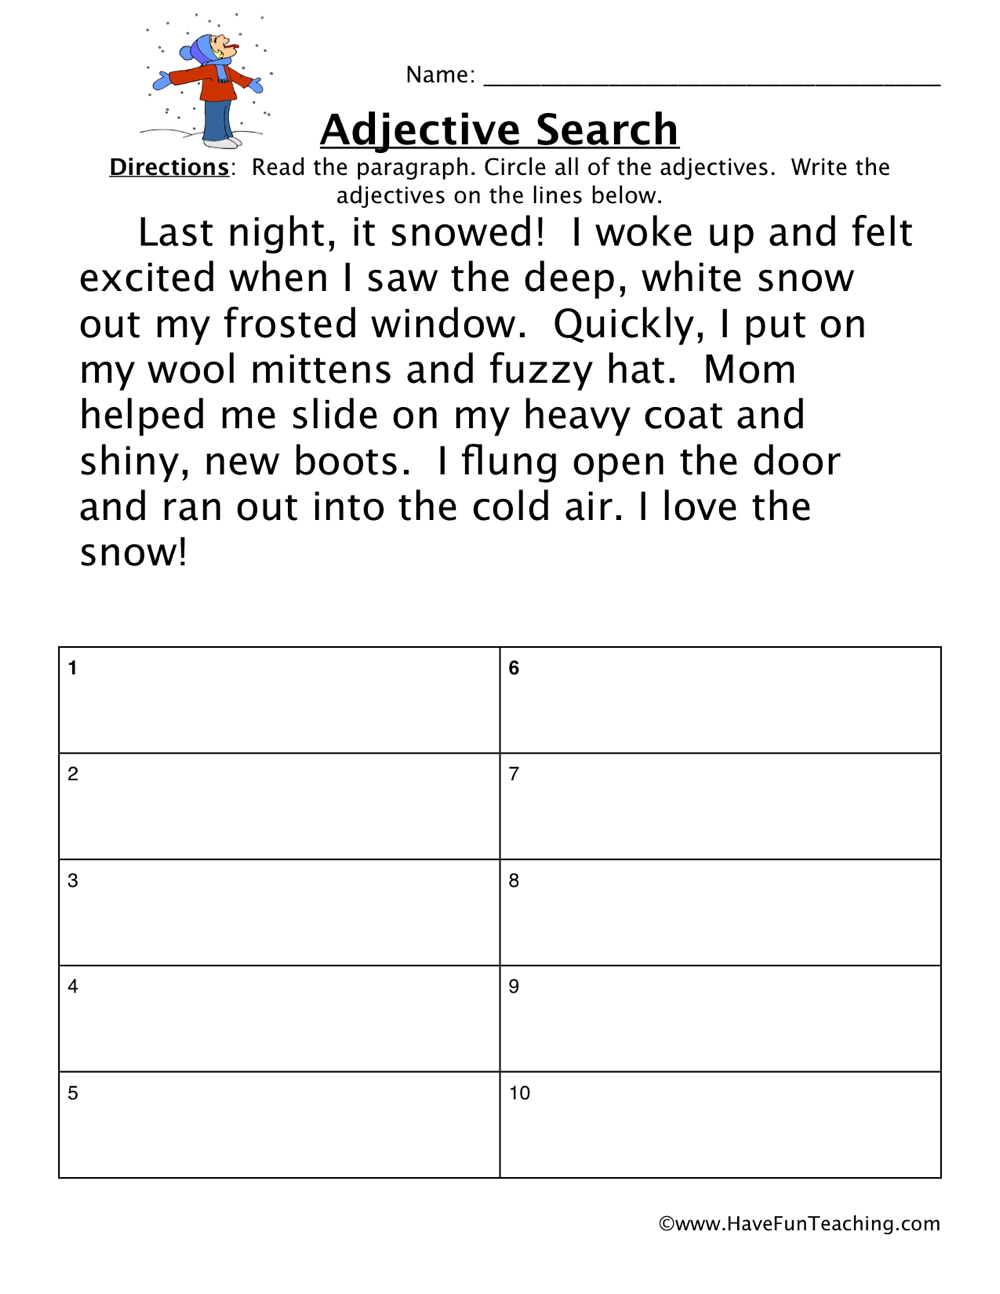 Adjective Worksheets Have Fun Teaching. Adjective Worksheet. Worksheet. 2nd Grade Adjective Worksheets At Clickcart.co